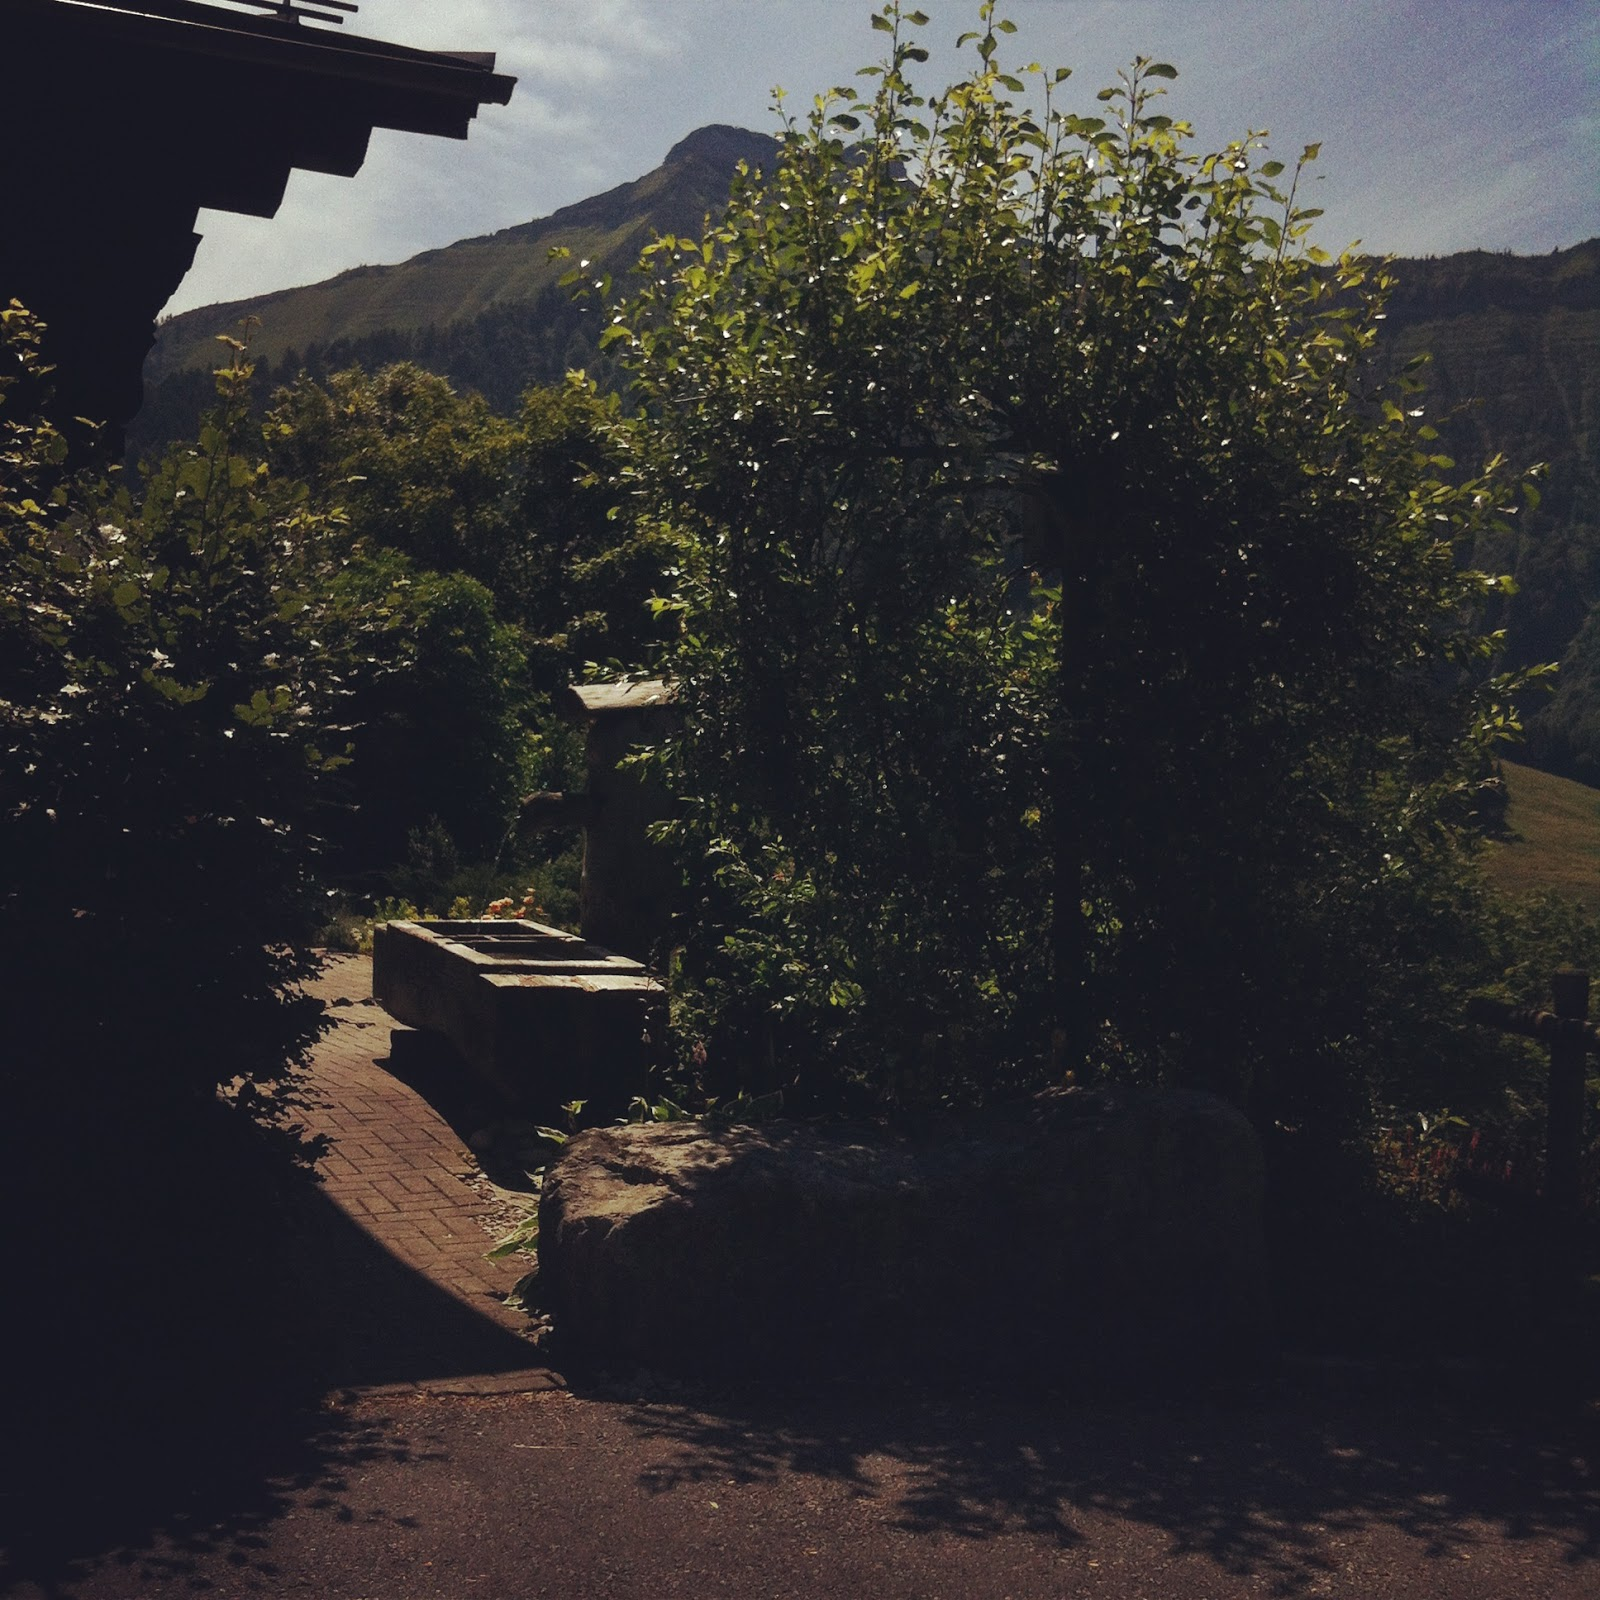 http://www.thecapitalf.com/2015/09/girls-trip-to-chalet.html